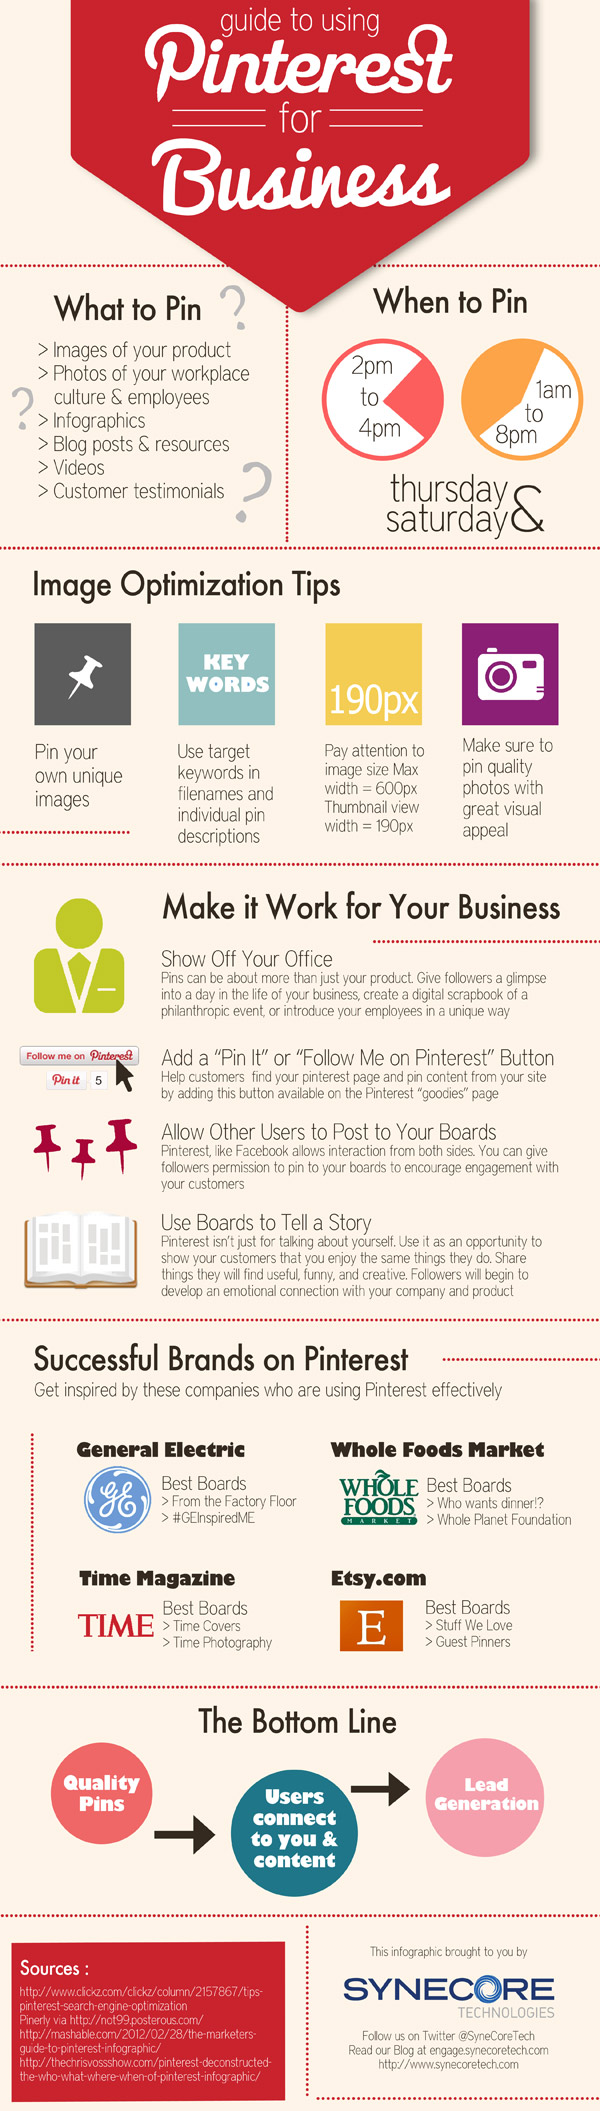 Pinterest-For-Business-infographic